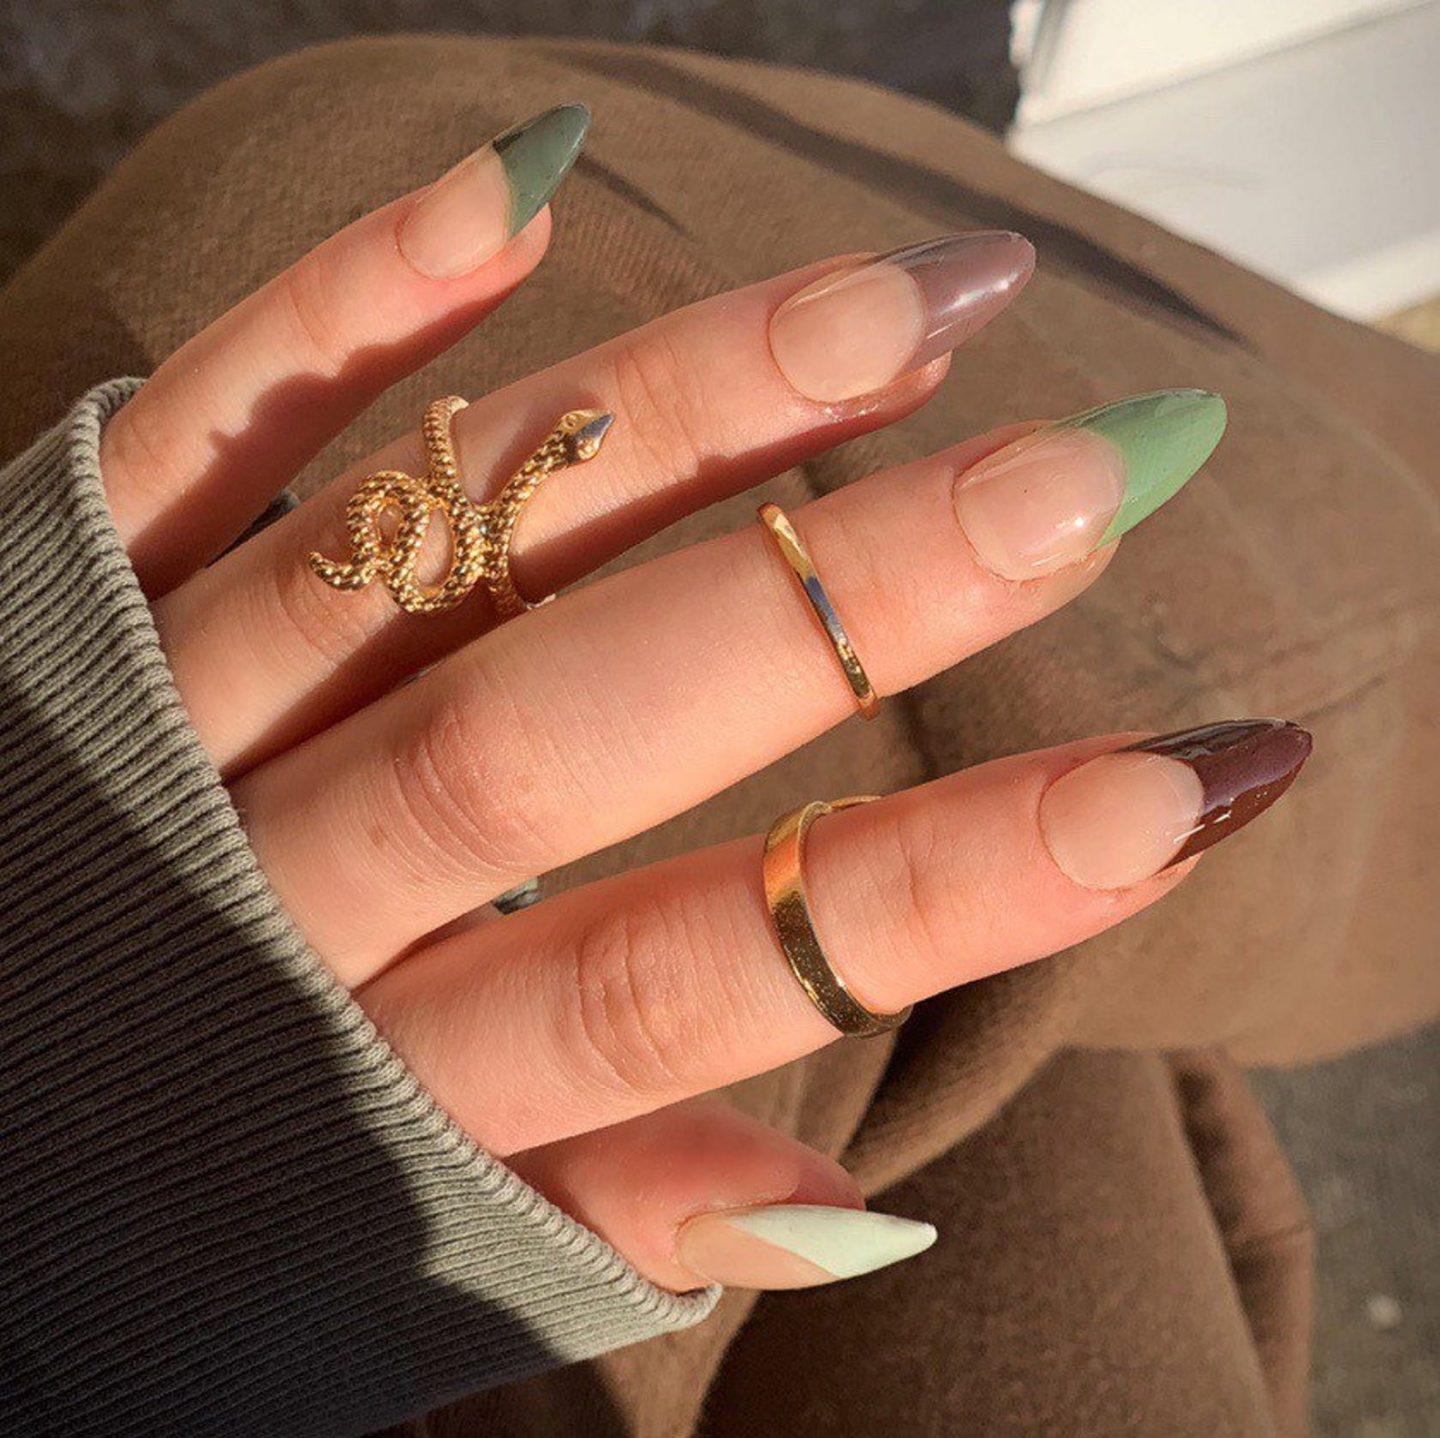 Green and brown French tip nails in almond shape